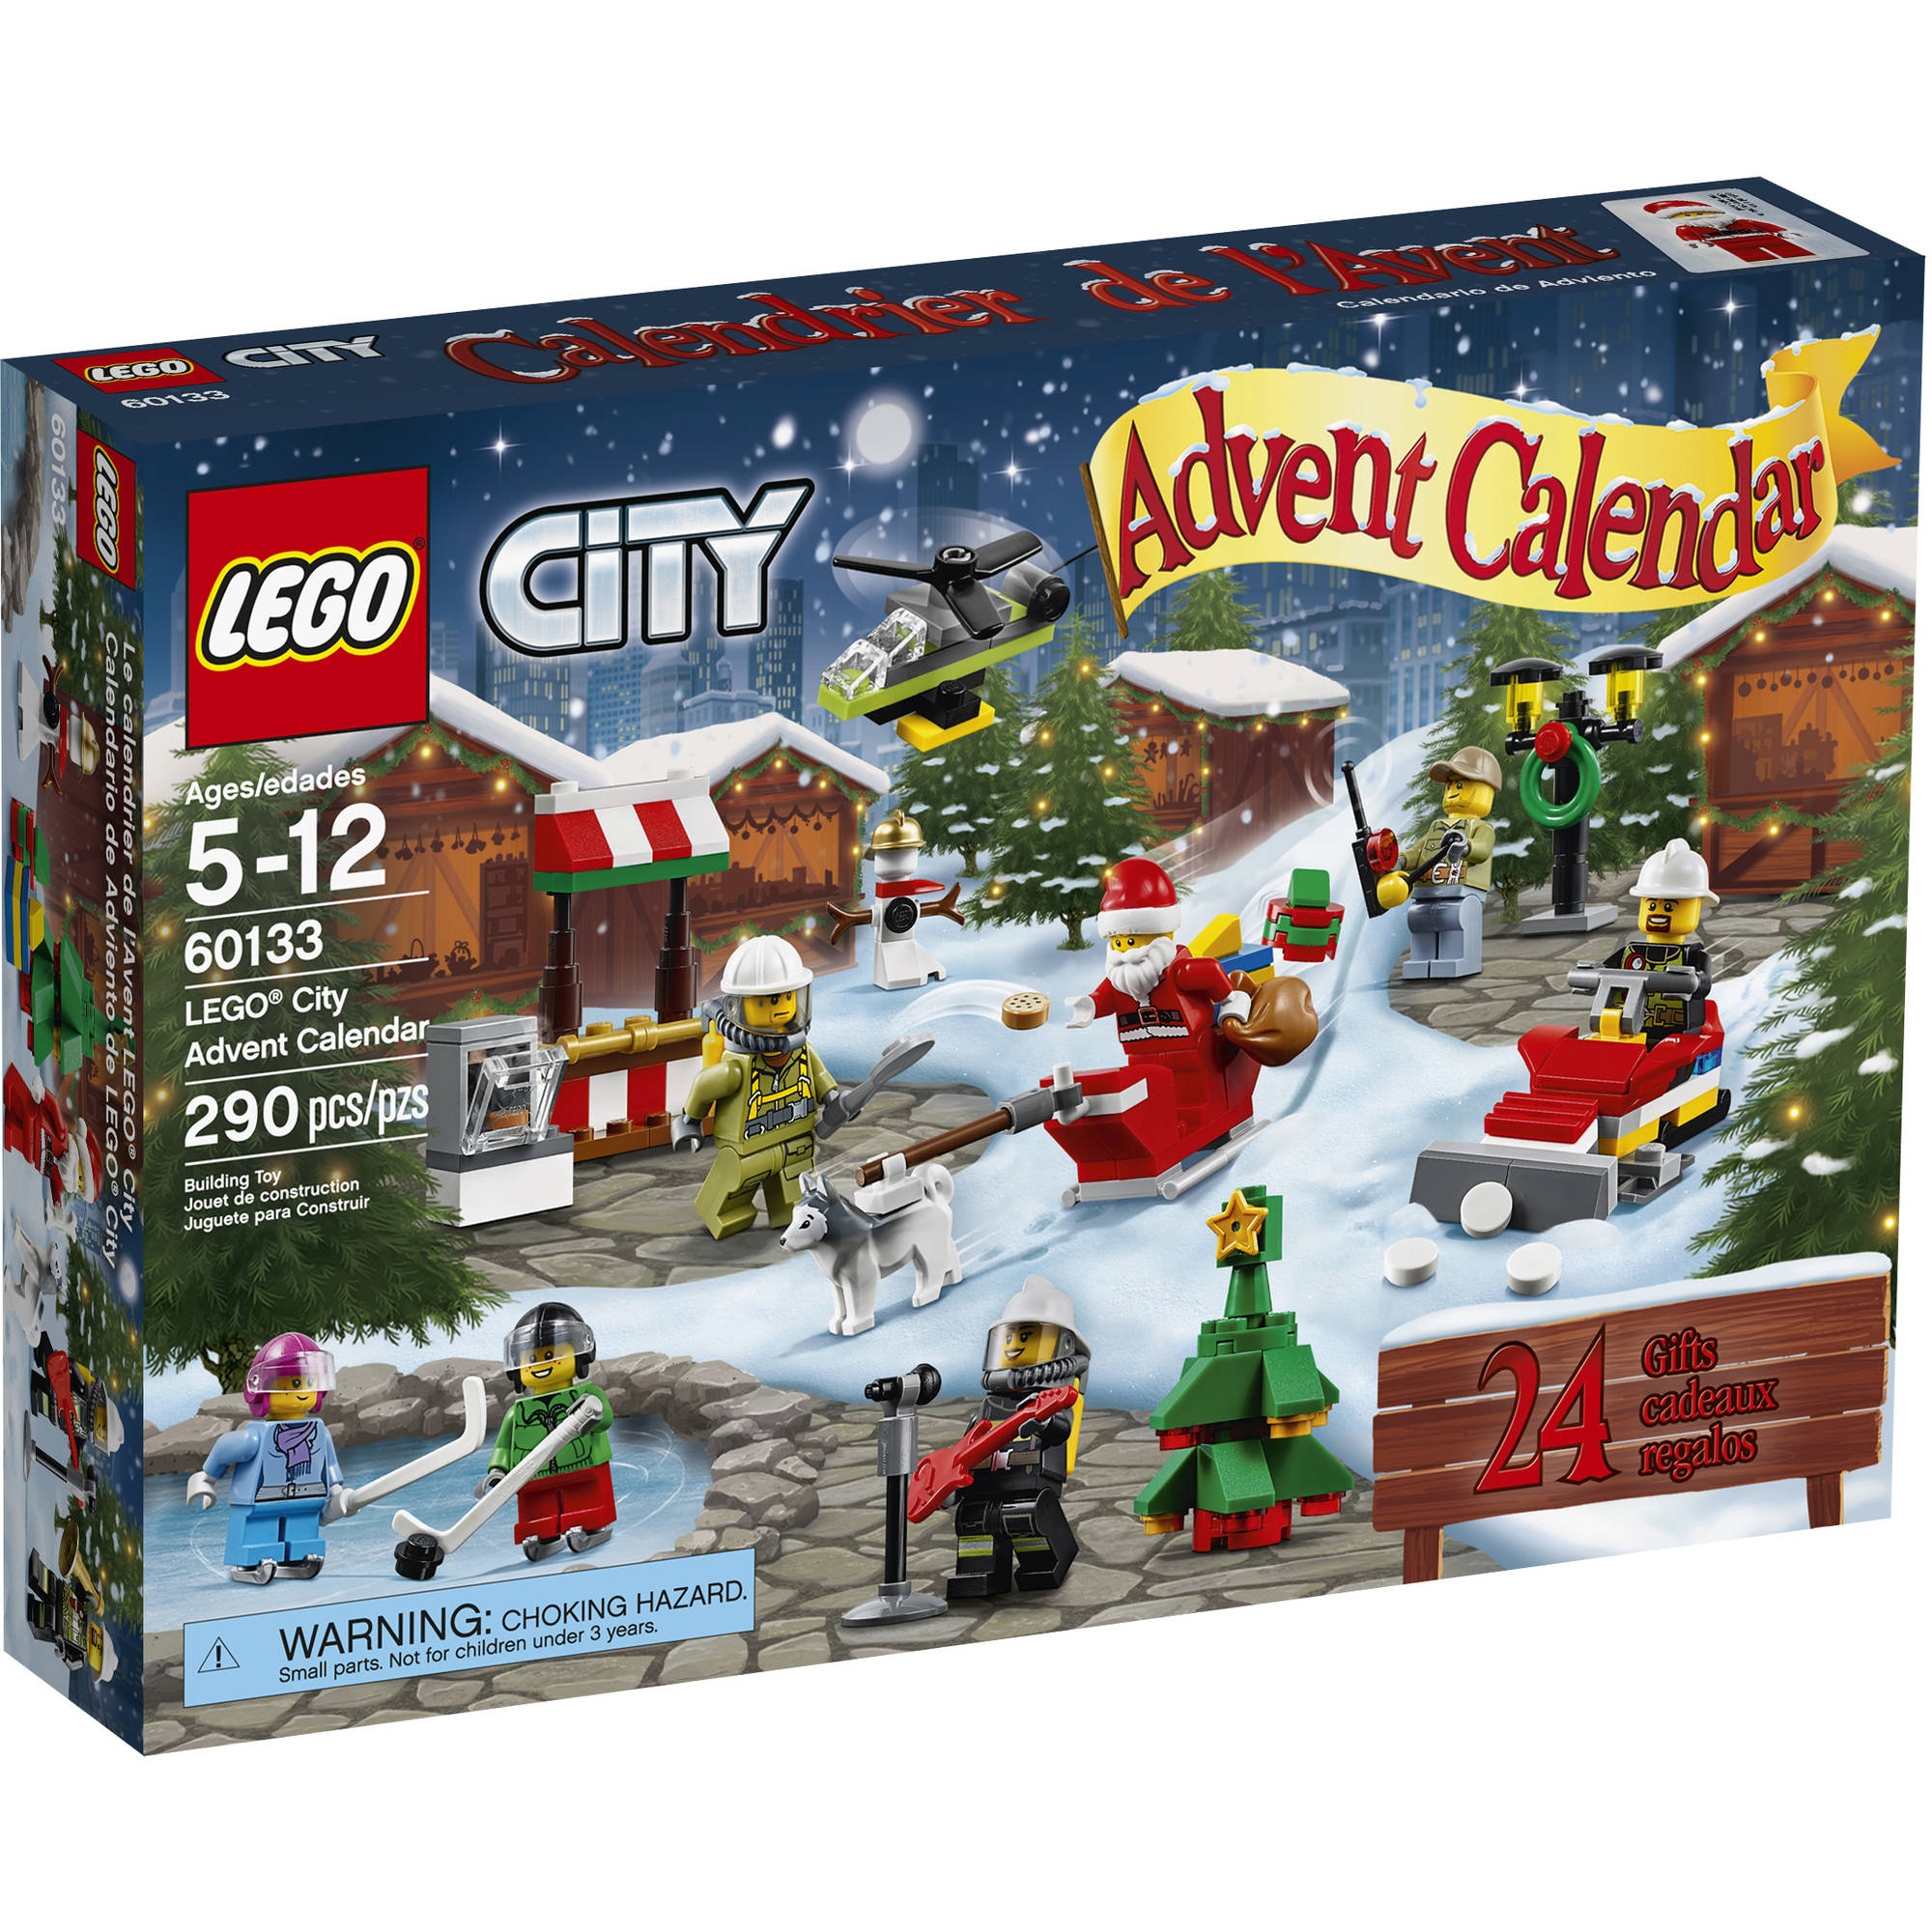 LEGO City Town LEGO City Advent Calendar 60133